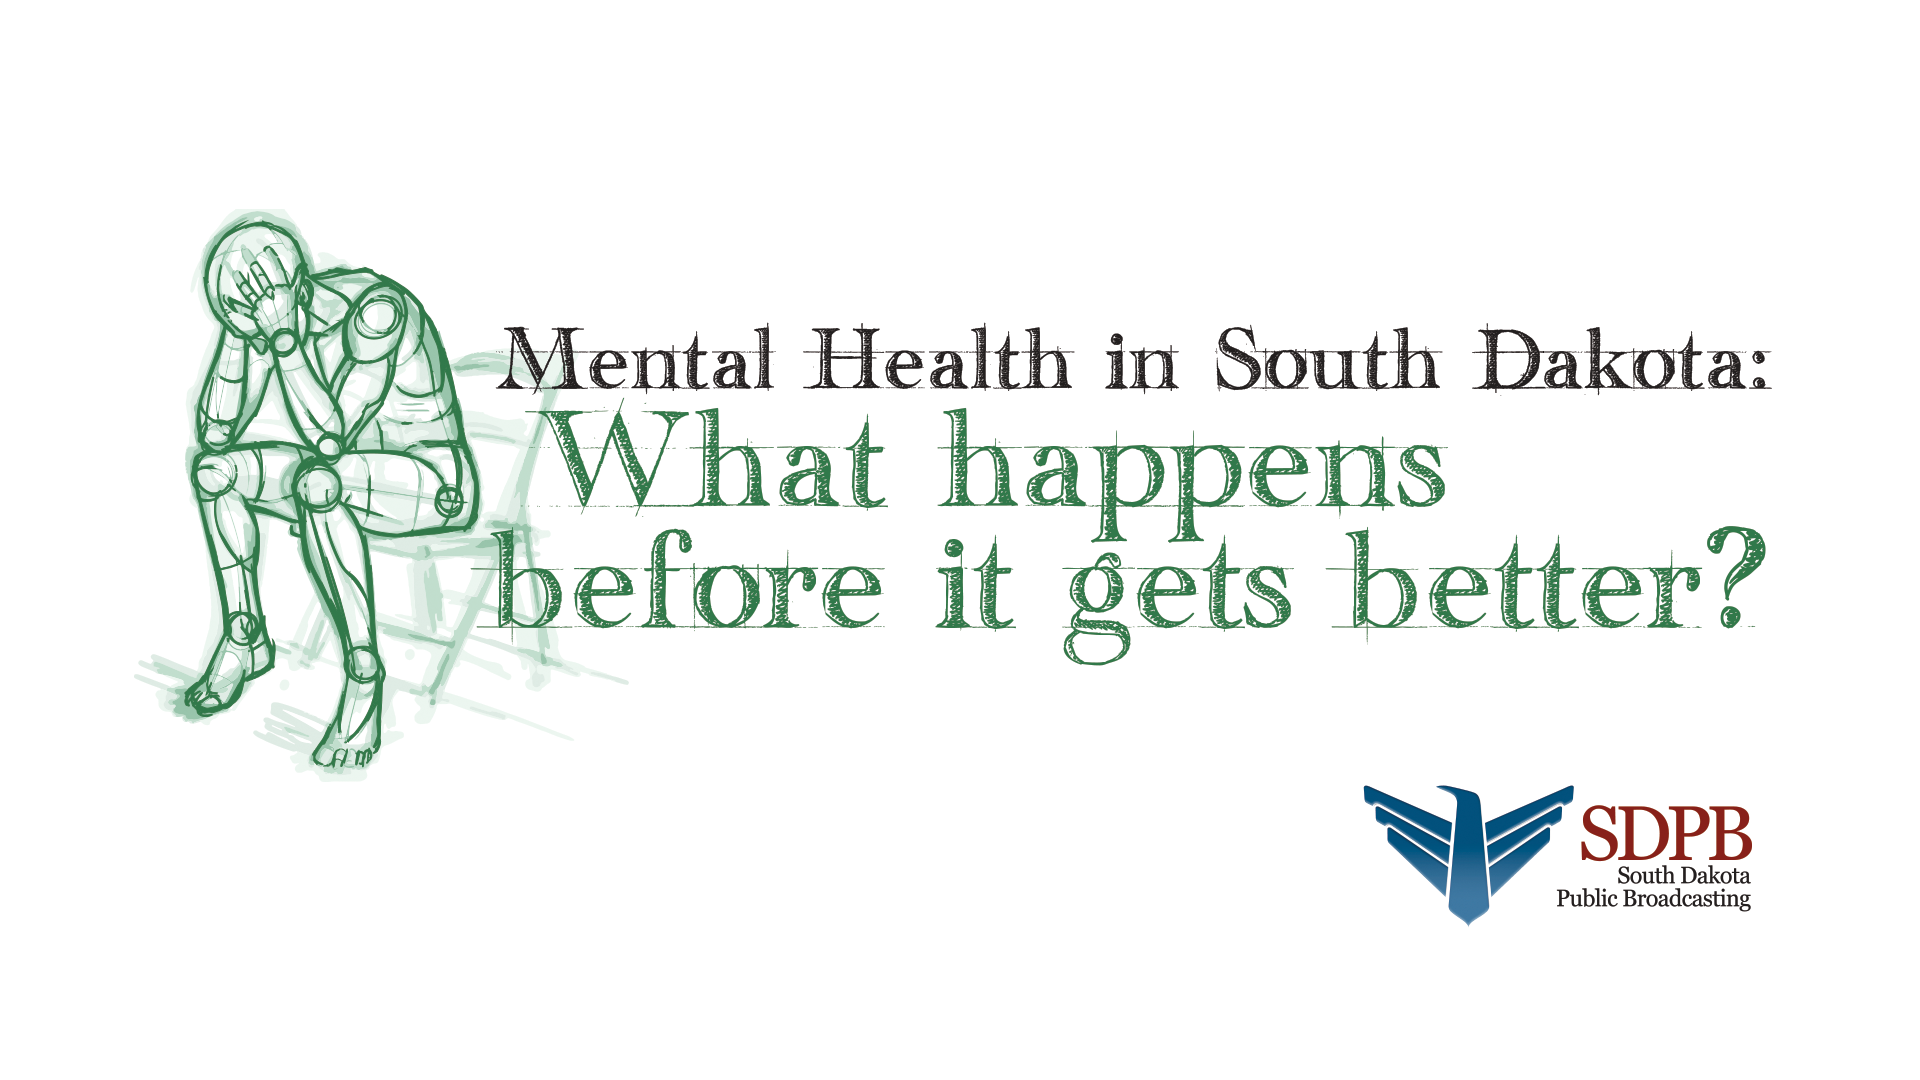 BEFORE IT GETS BETTER:  Mental Health in SD